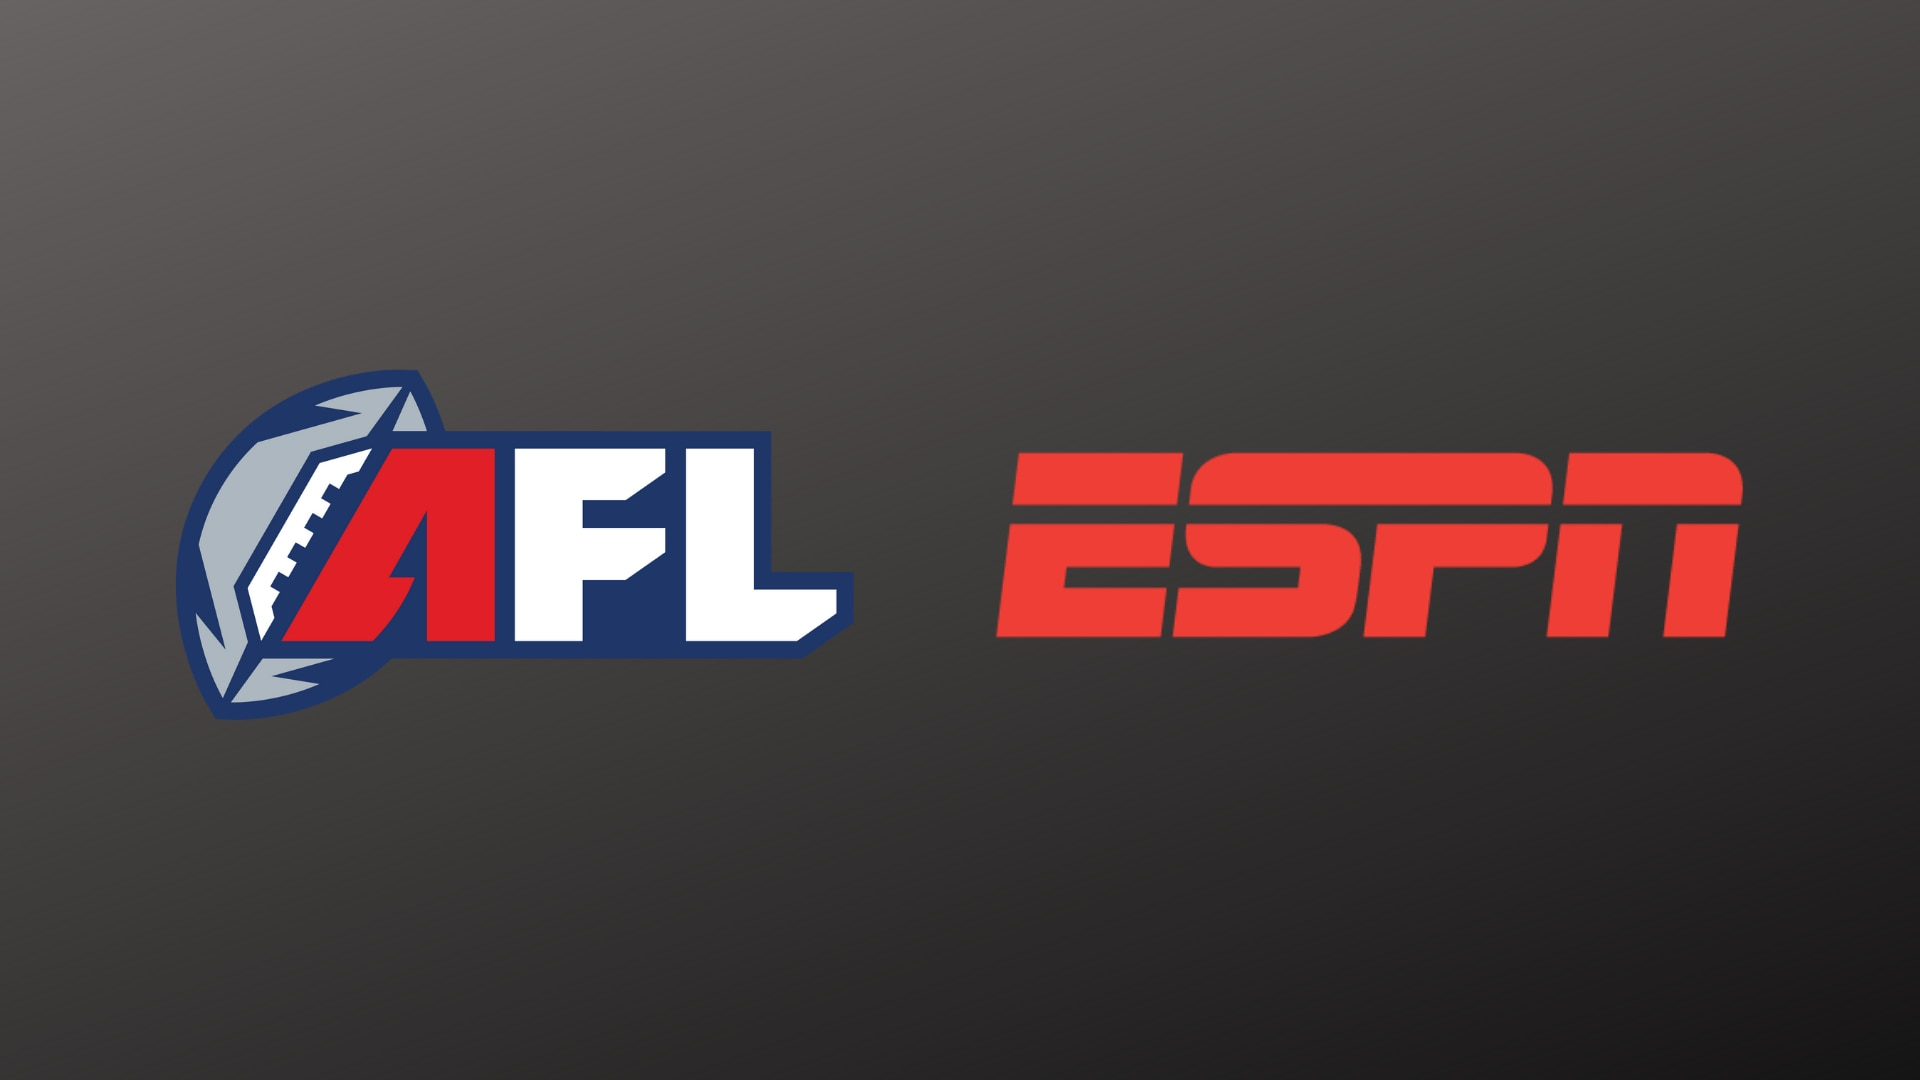 Arena Football League And Espn Announce Agreement To   Espn 1920x1080